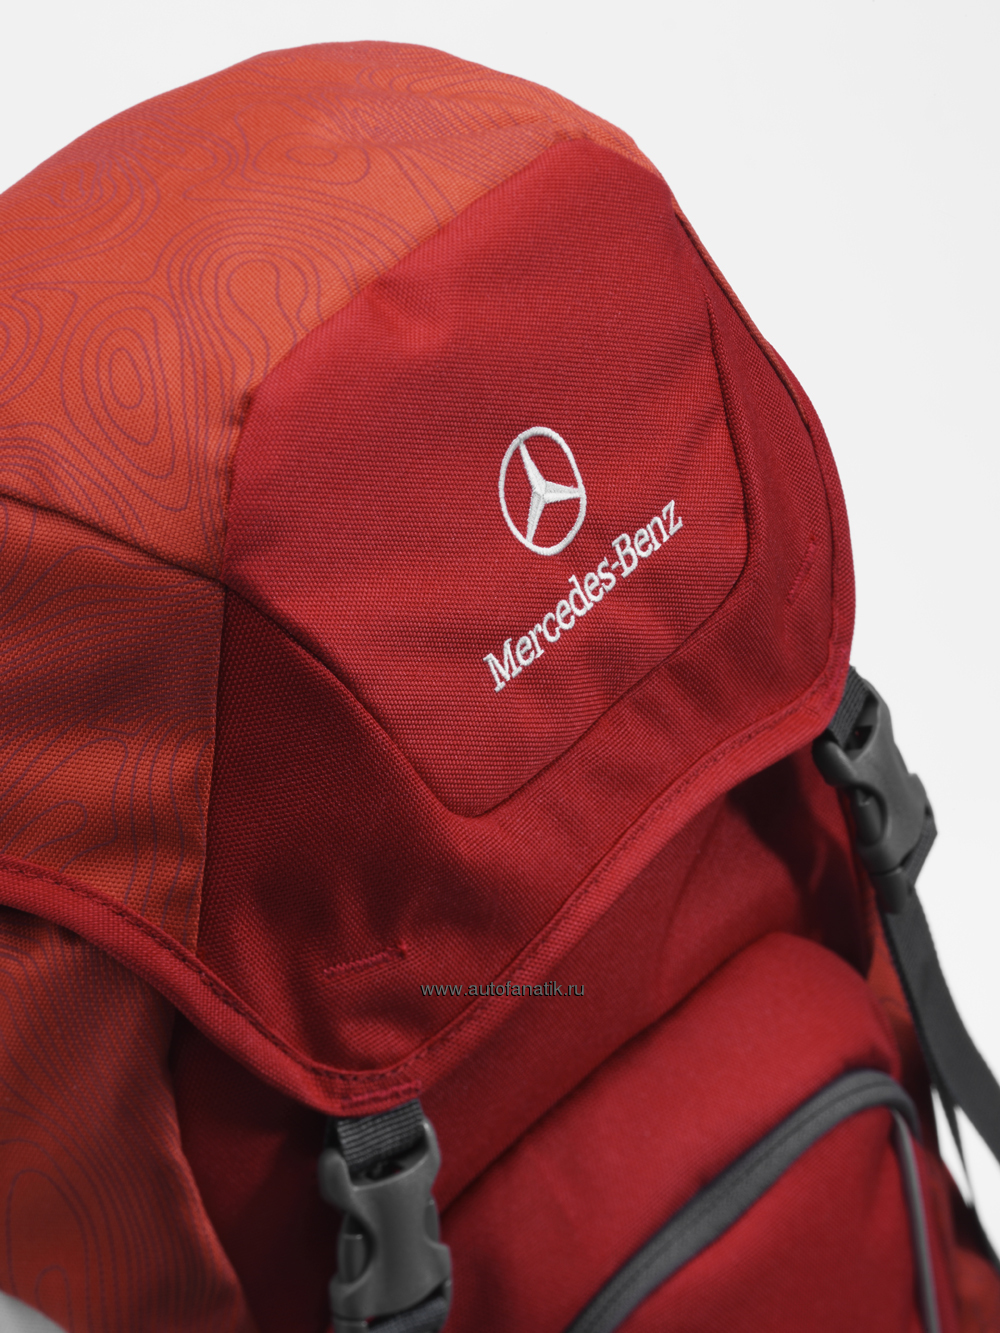 Mercedes benz kids backpack rucksack for Mercedes benz backpack